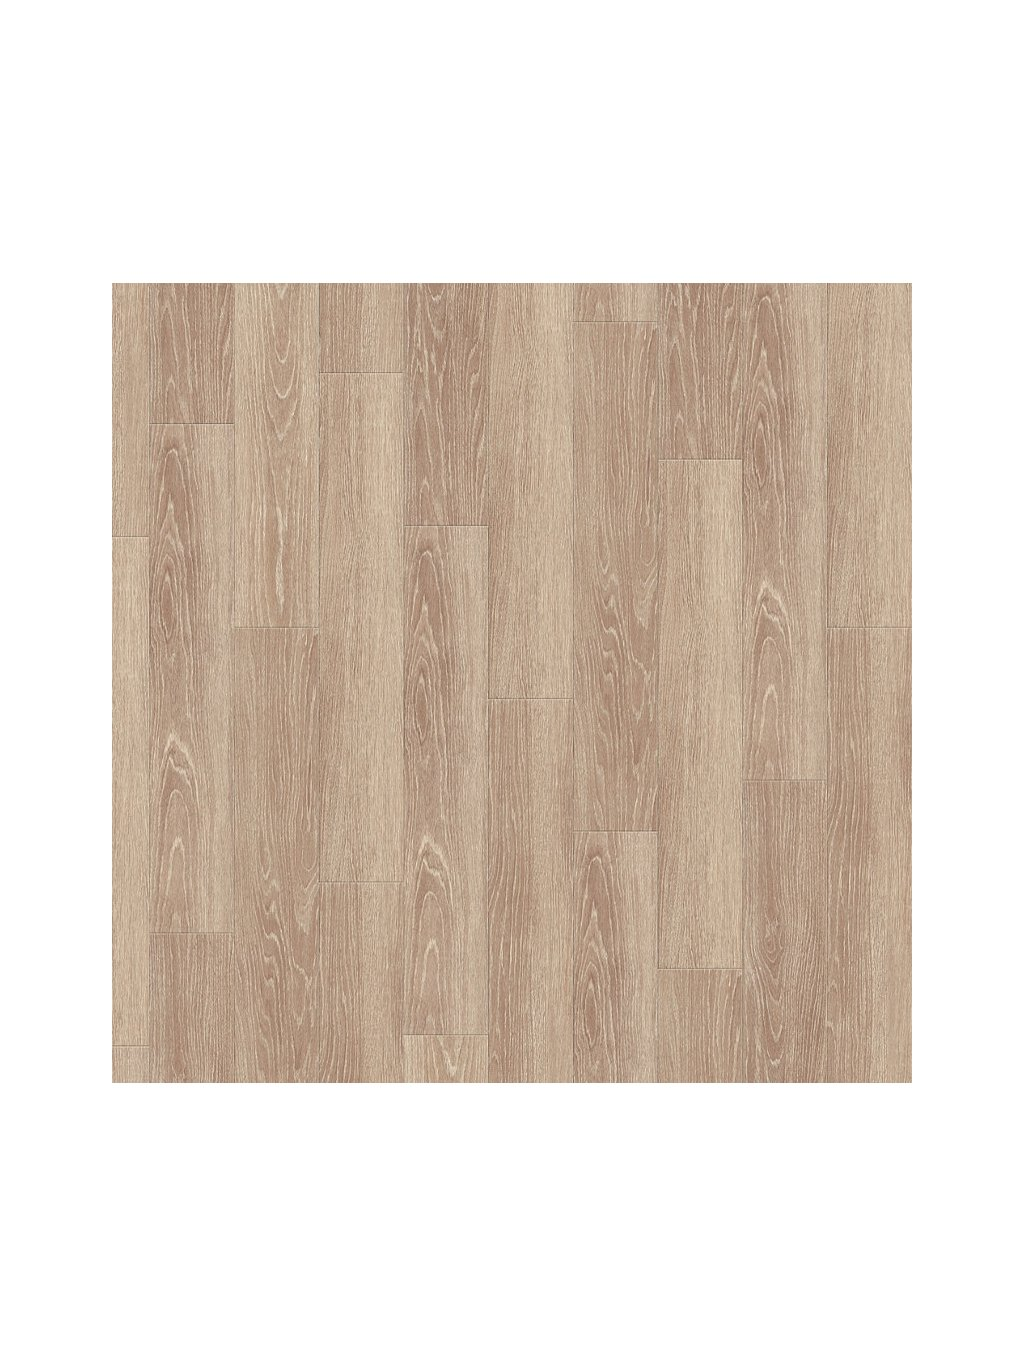 Expona Commercial 4081 Blond Limed Oak